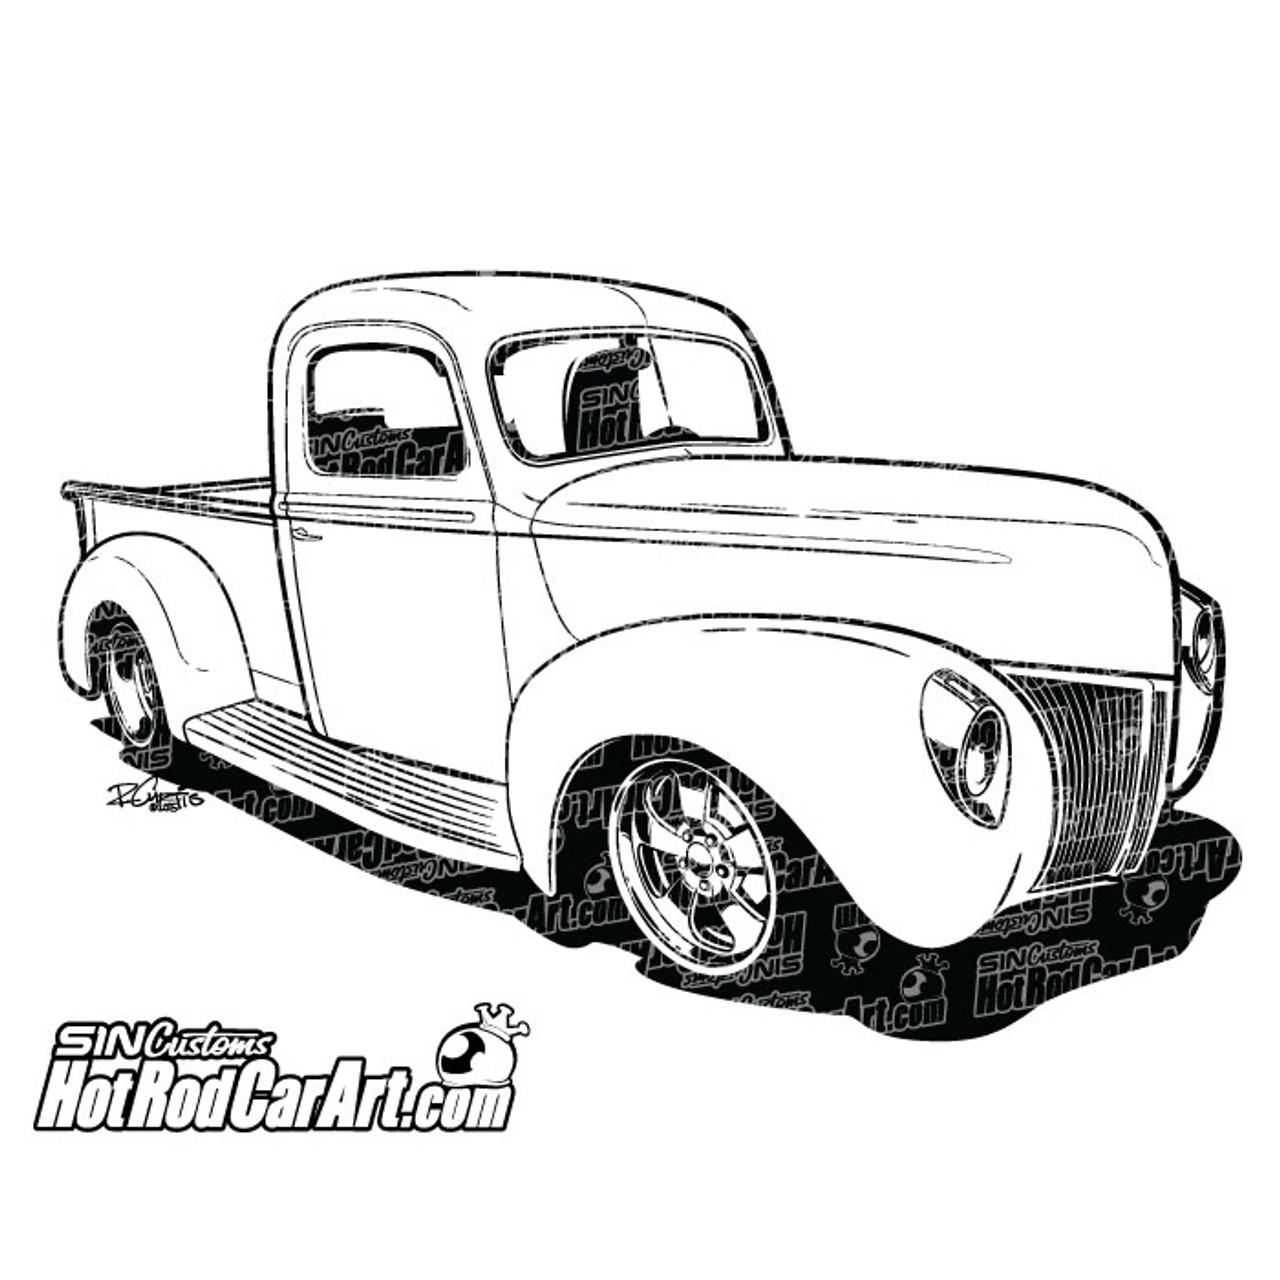 medium resolution of 1940 ford truck 2015 ryan curtis hotrodcarart com